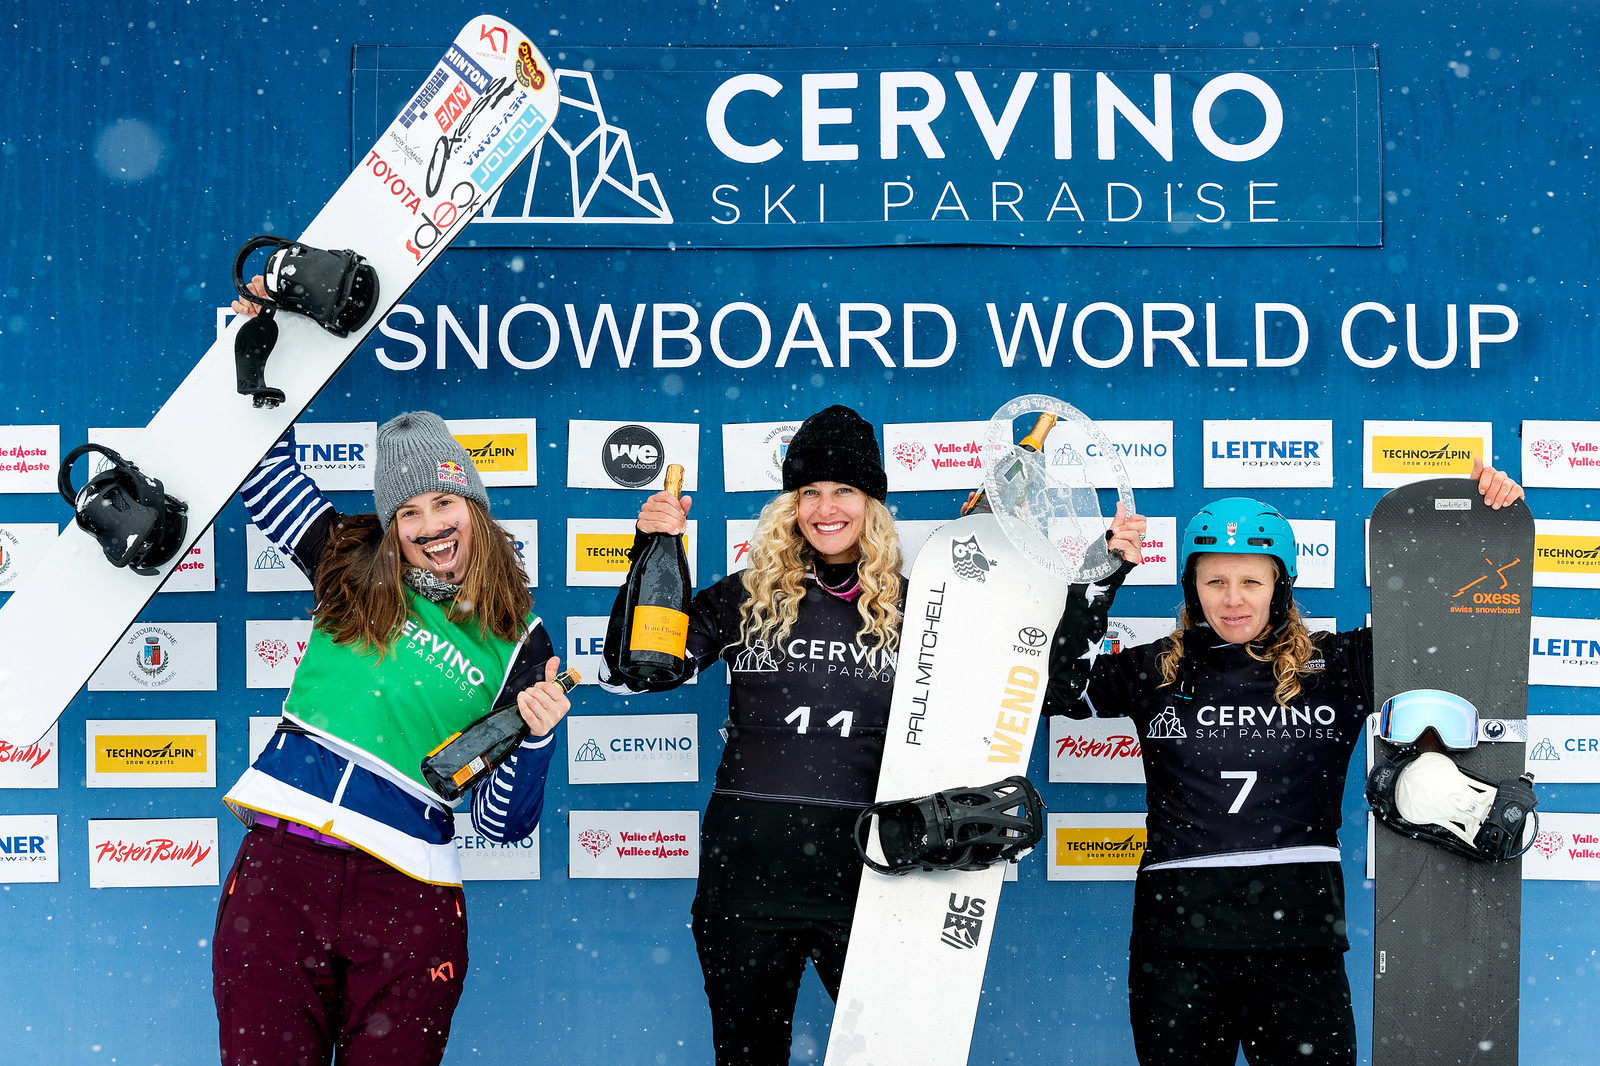 1st Place - World Cup: Cervinia, Italy